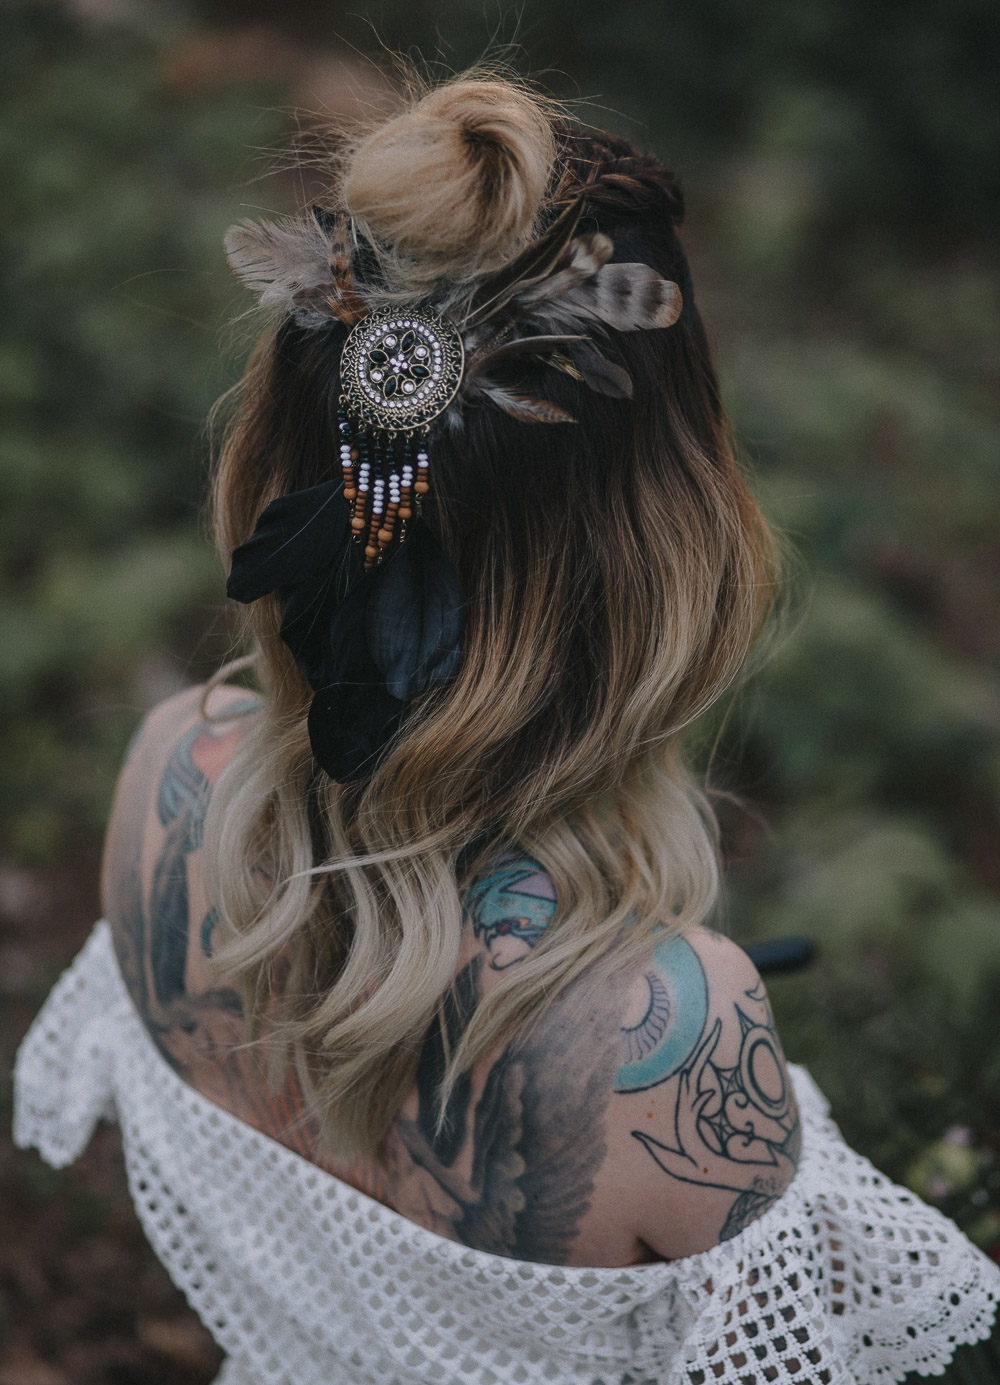 elopement ideas, elopement, bohemian hair, alternative bride, autumn wedding, bearded groom, bohemian wedding, Bridal shoot, candles, cool bride, daughters of simone, festival bride, forrest wedding, oudoor wedding, rock bride, rustic charm, sunset wedding, tattooed bride, tattooed groom, Wedding inspiration, woodland wedding